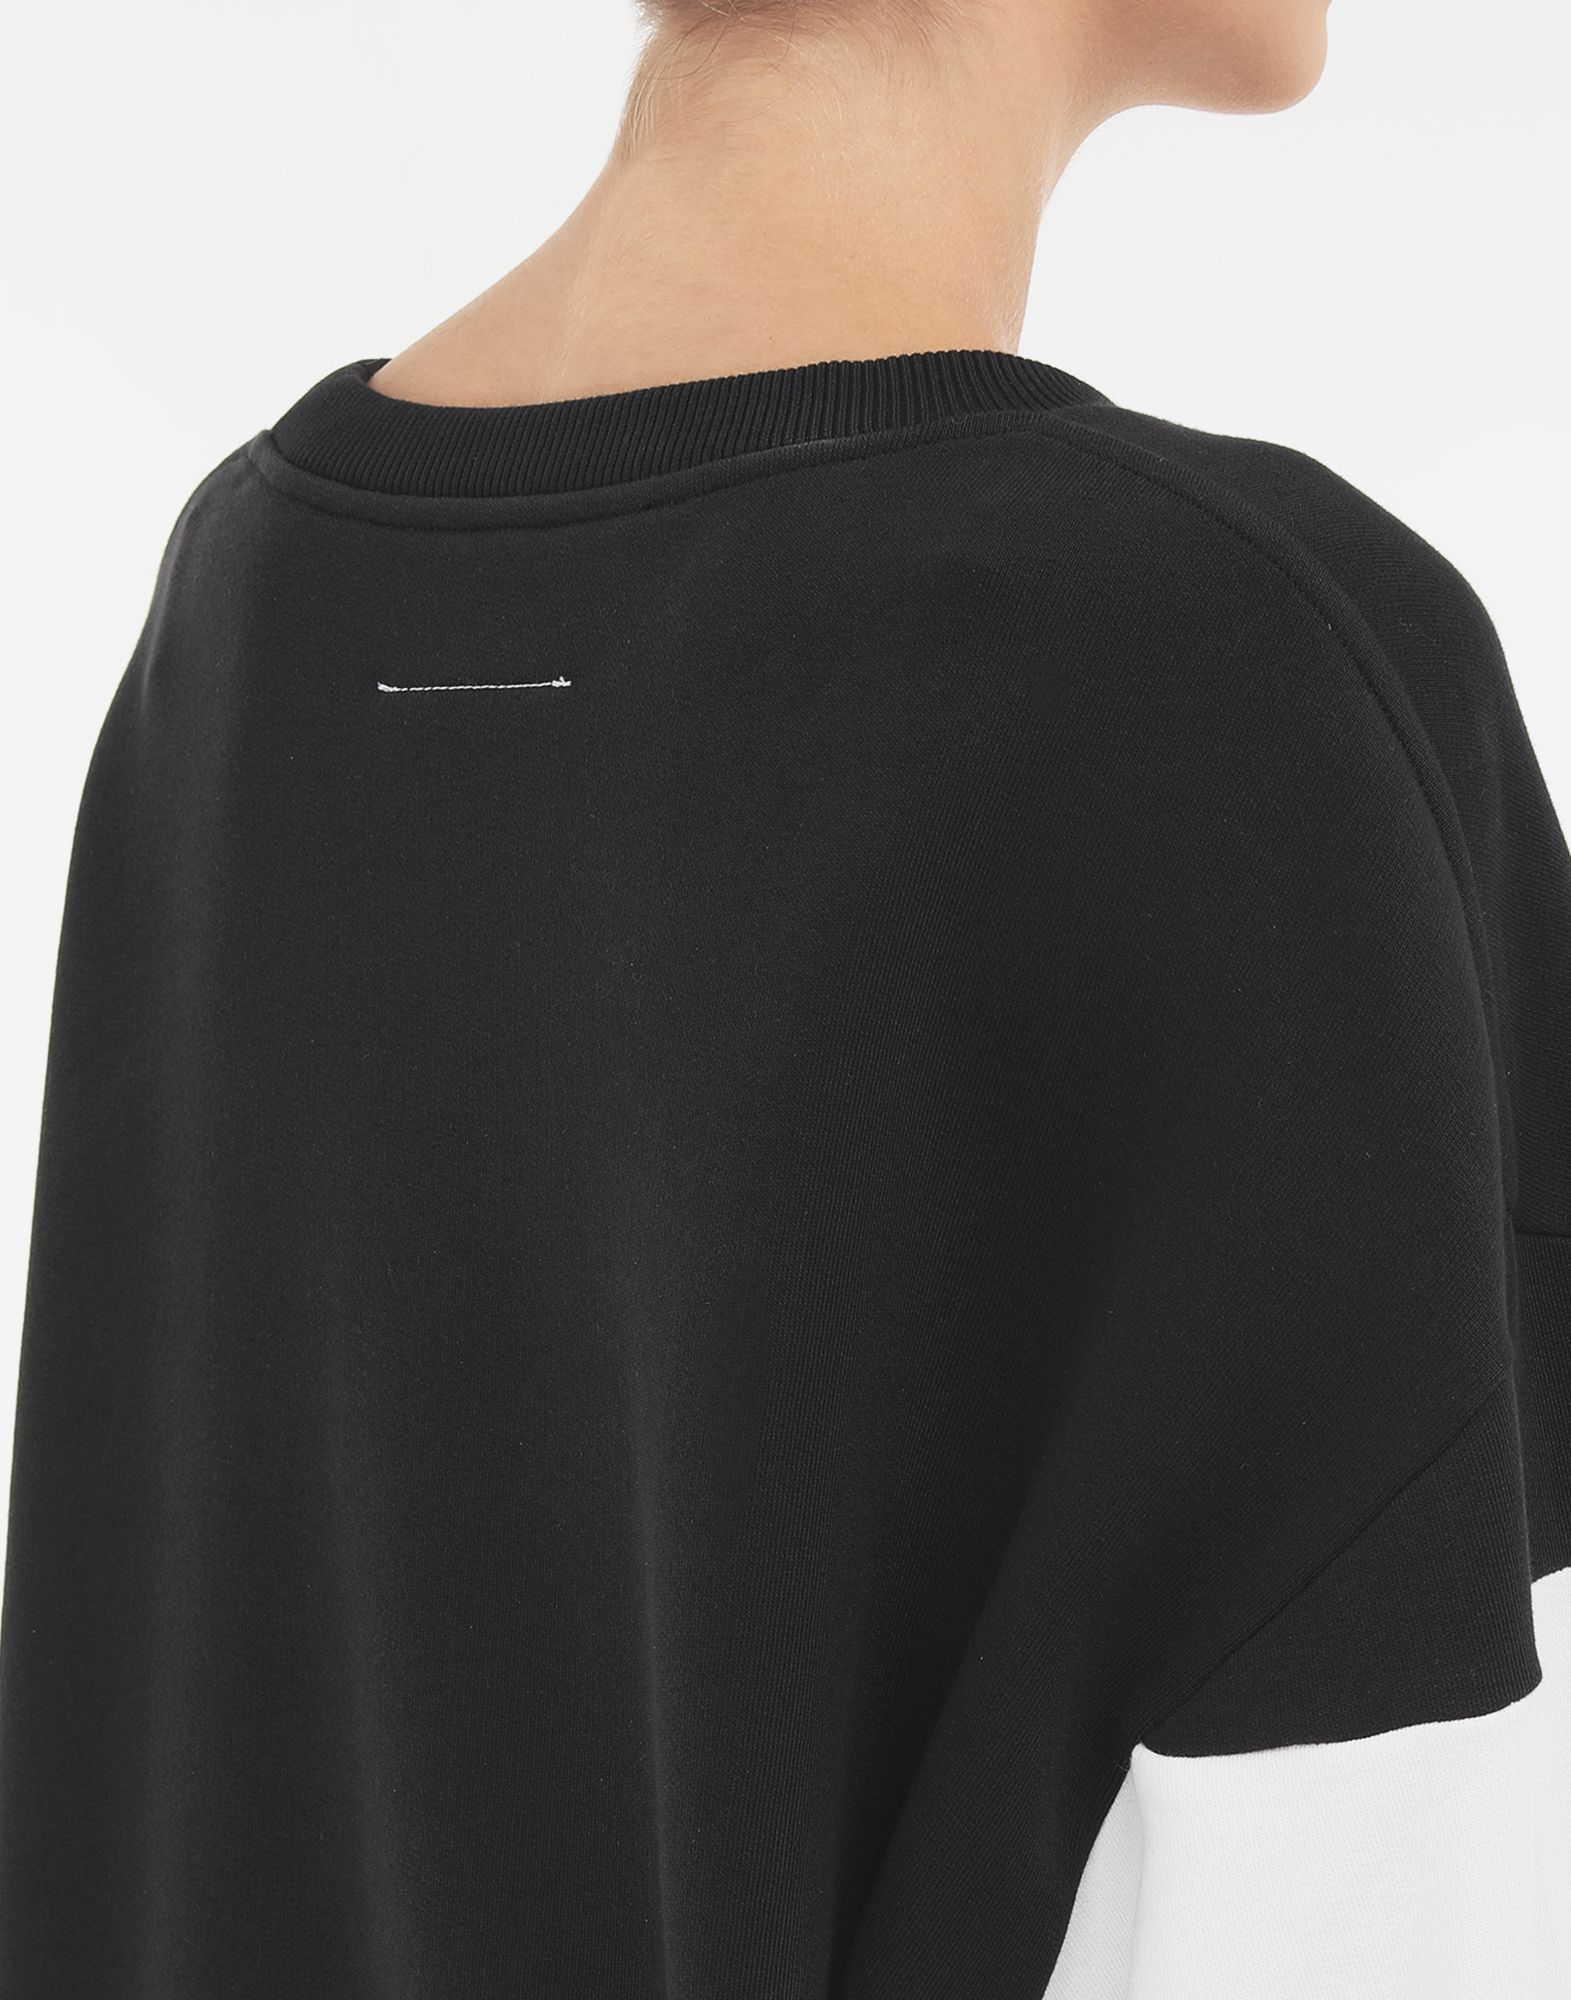 MM6 MAISON MARGIELA 'E' sweatshirt Sweatshirt Woman b